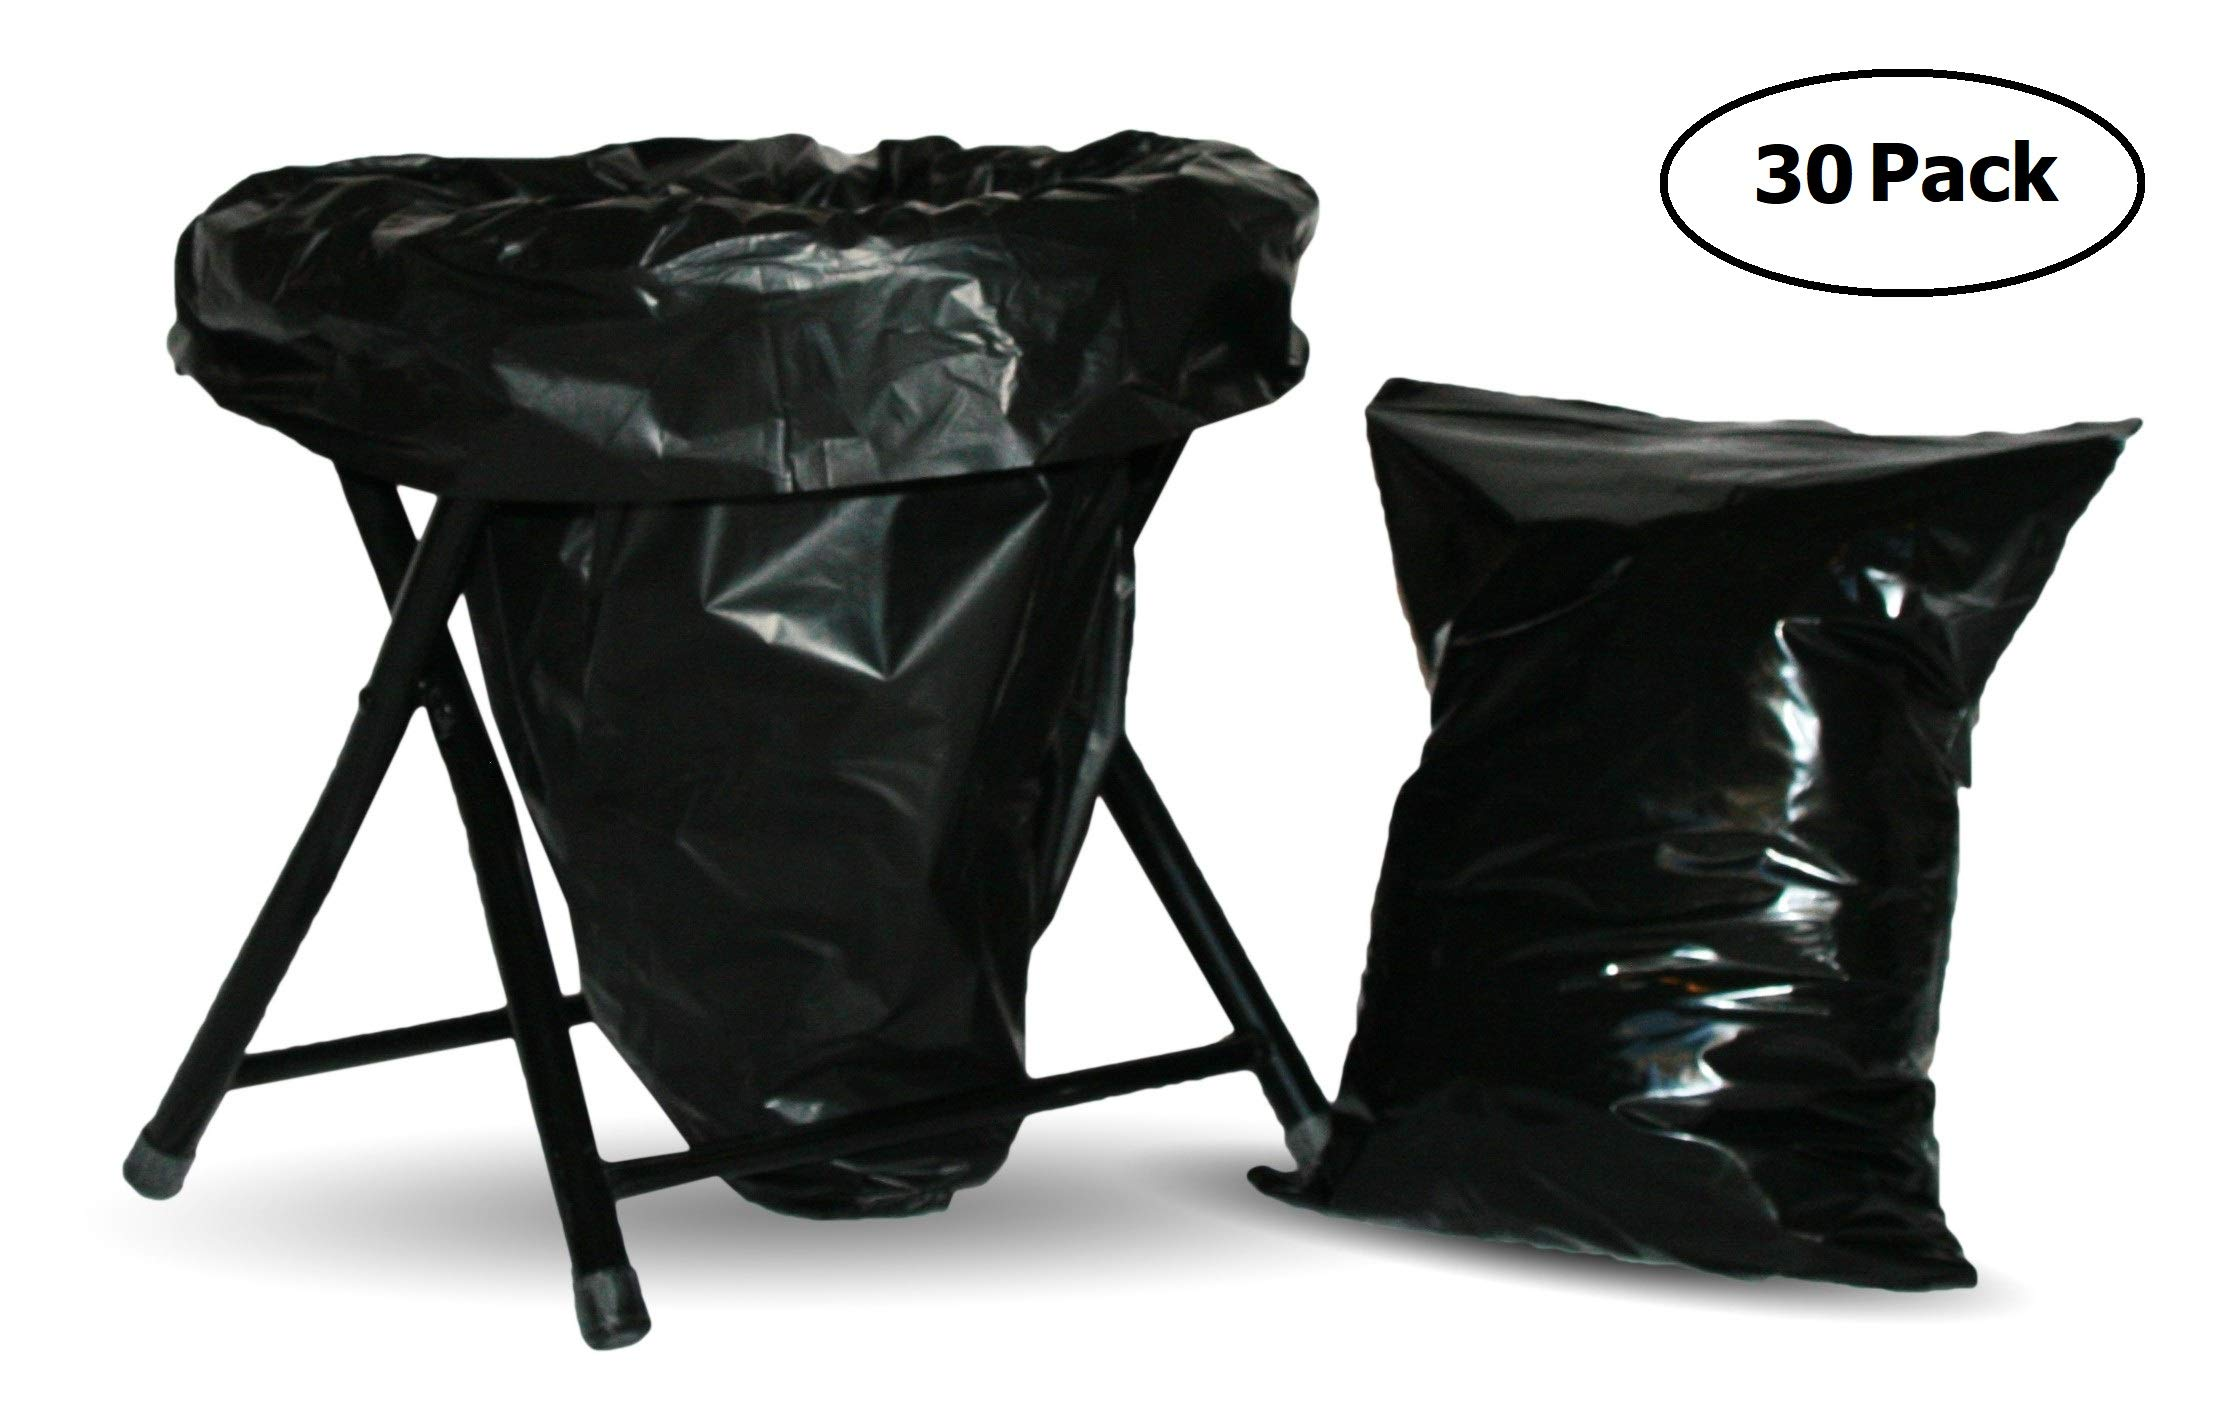 Trail Essentials Carry-Out Toilet Waste Bags and Toilet Liner Bags, Reclosable Outer Bag, Black Opaque, Zip Seal, Leak Free, Smell Proof (30 Toilet Liners + 30 Carry-Out Bags)